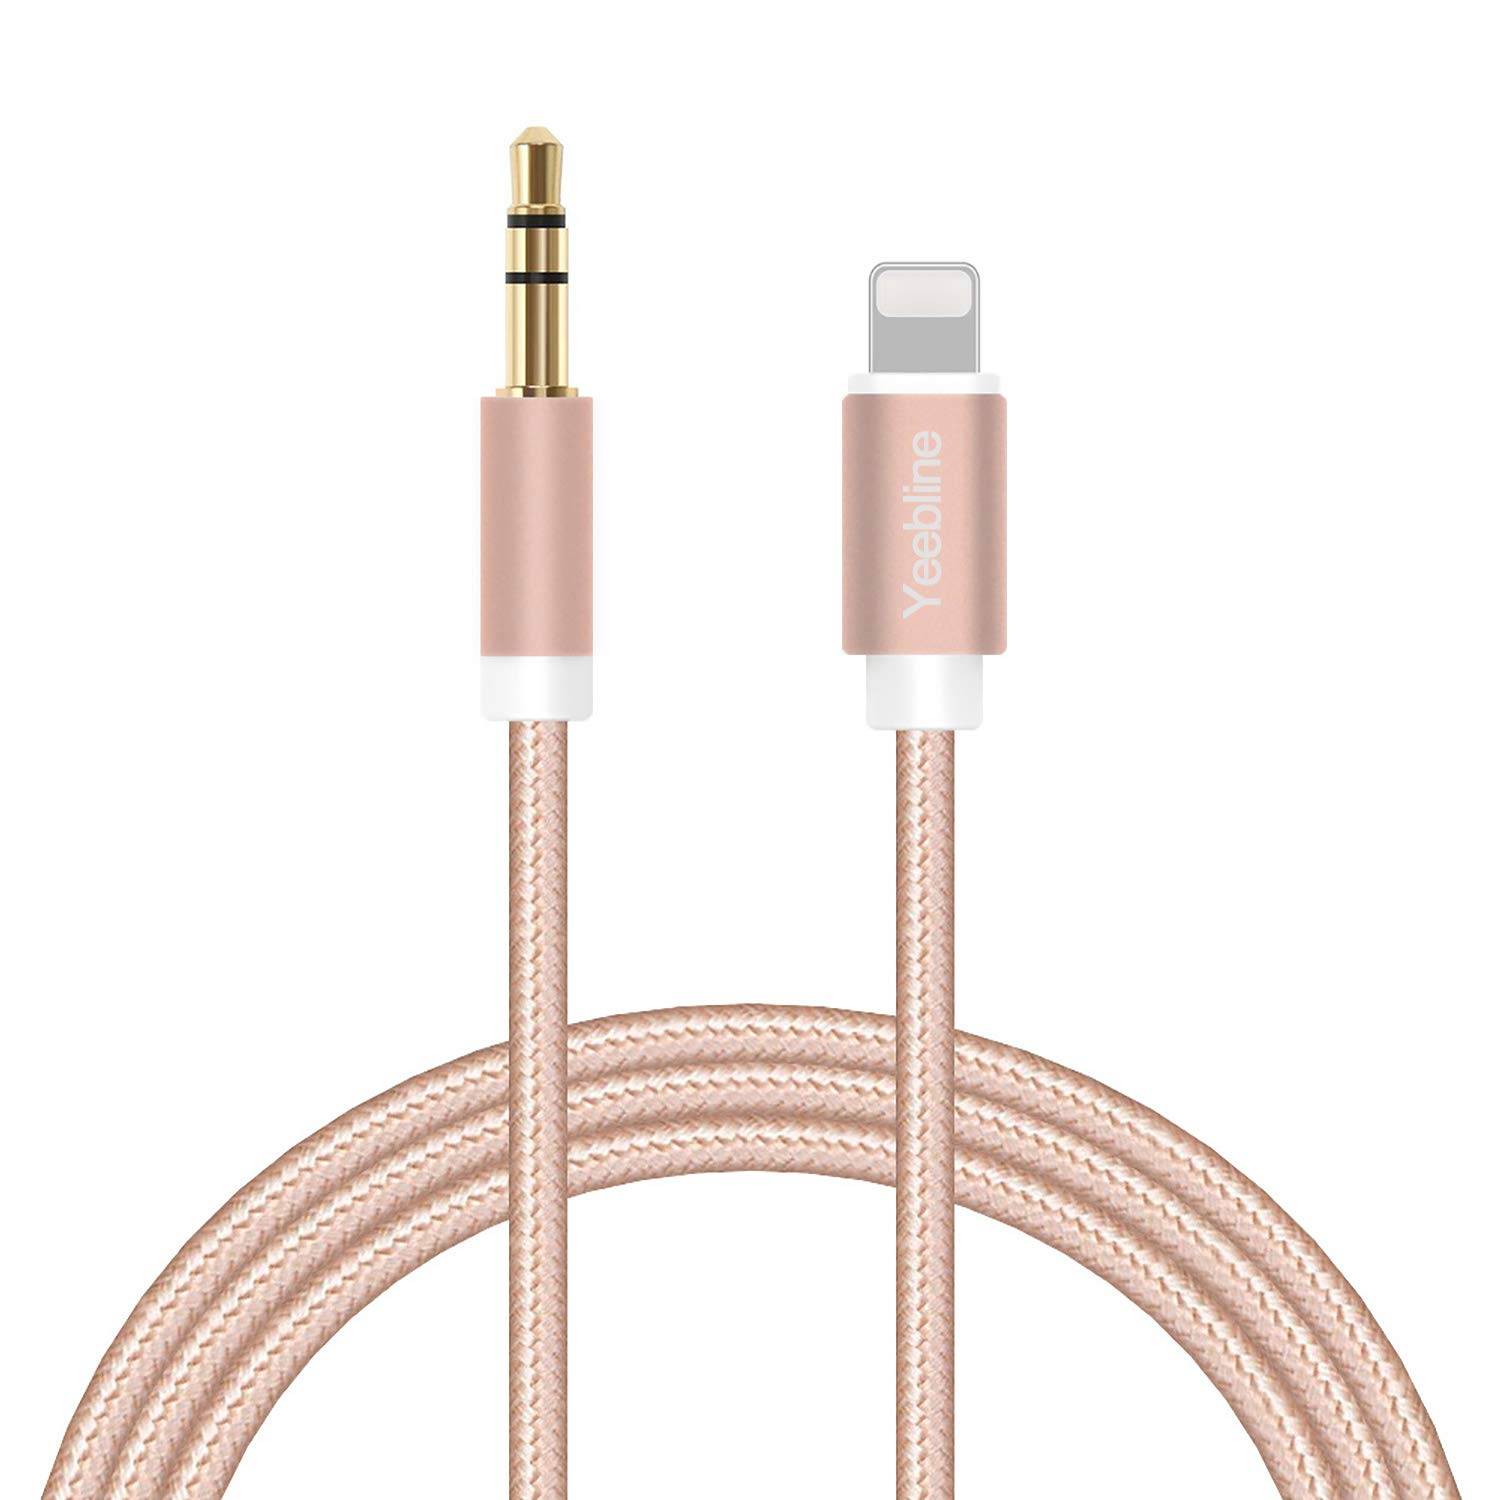 Aux Cable Compatible with iPhone 8, Yeebline Phone to 3.5mm Male Stereo Audio Adapter [Aluminum Shell, Nylon Braided] Trusted Car Stereo Aux Cord - Pink by Yeebline